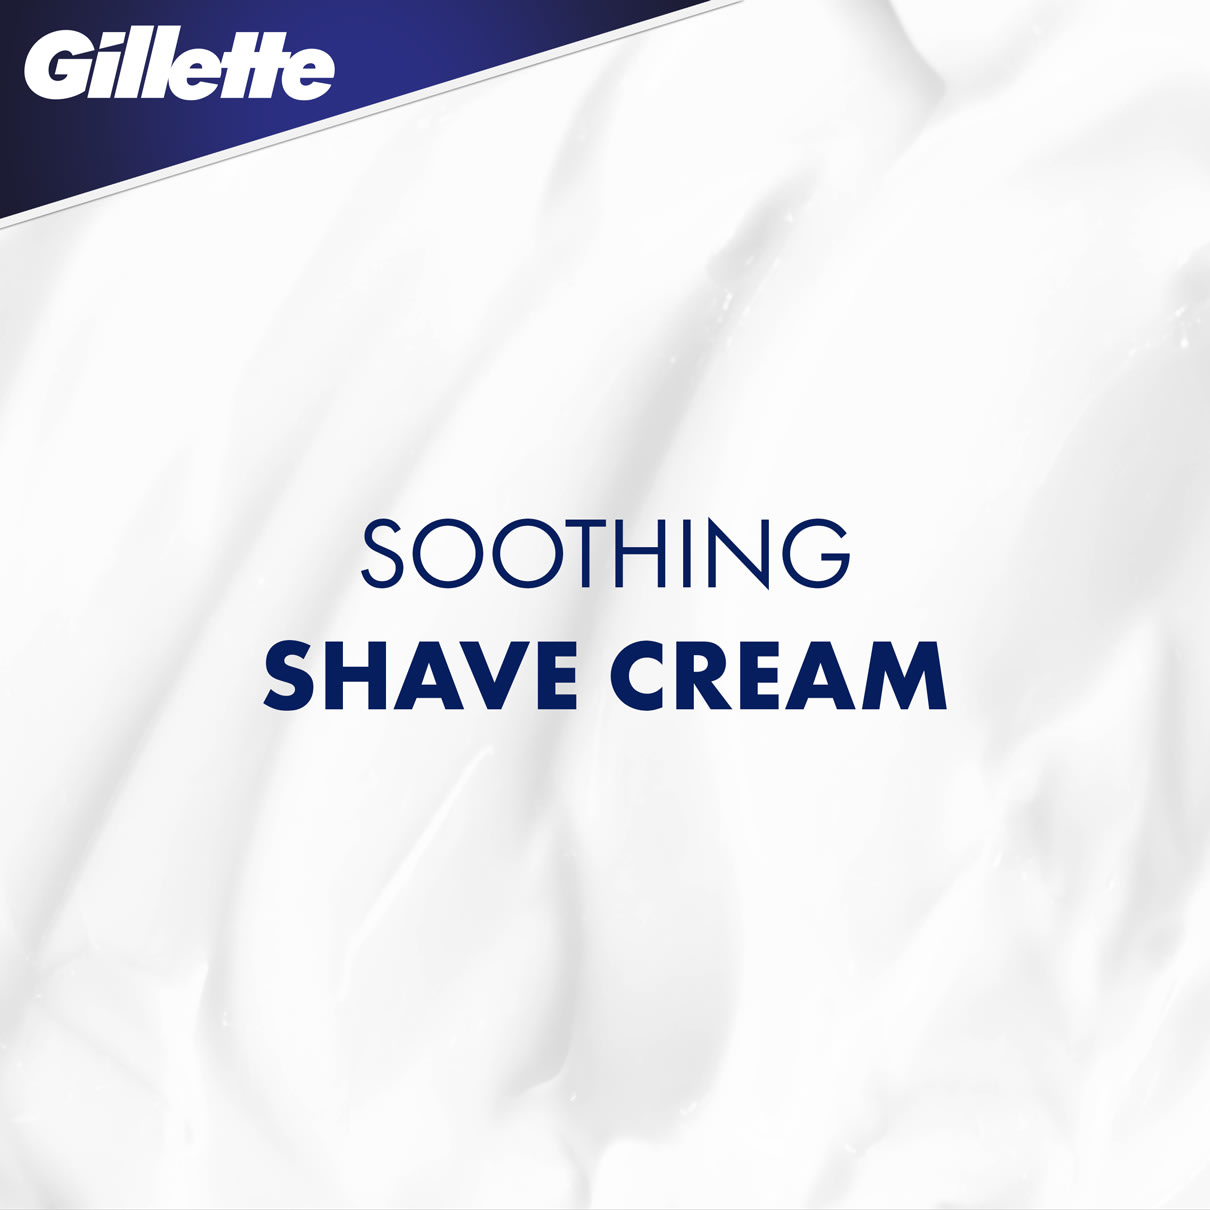 PURE by Gillette® SOOTHING SHAVE CREAM WITH ALOE